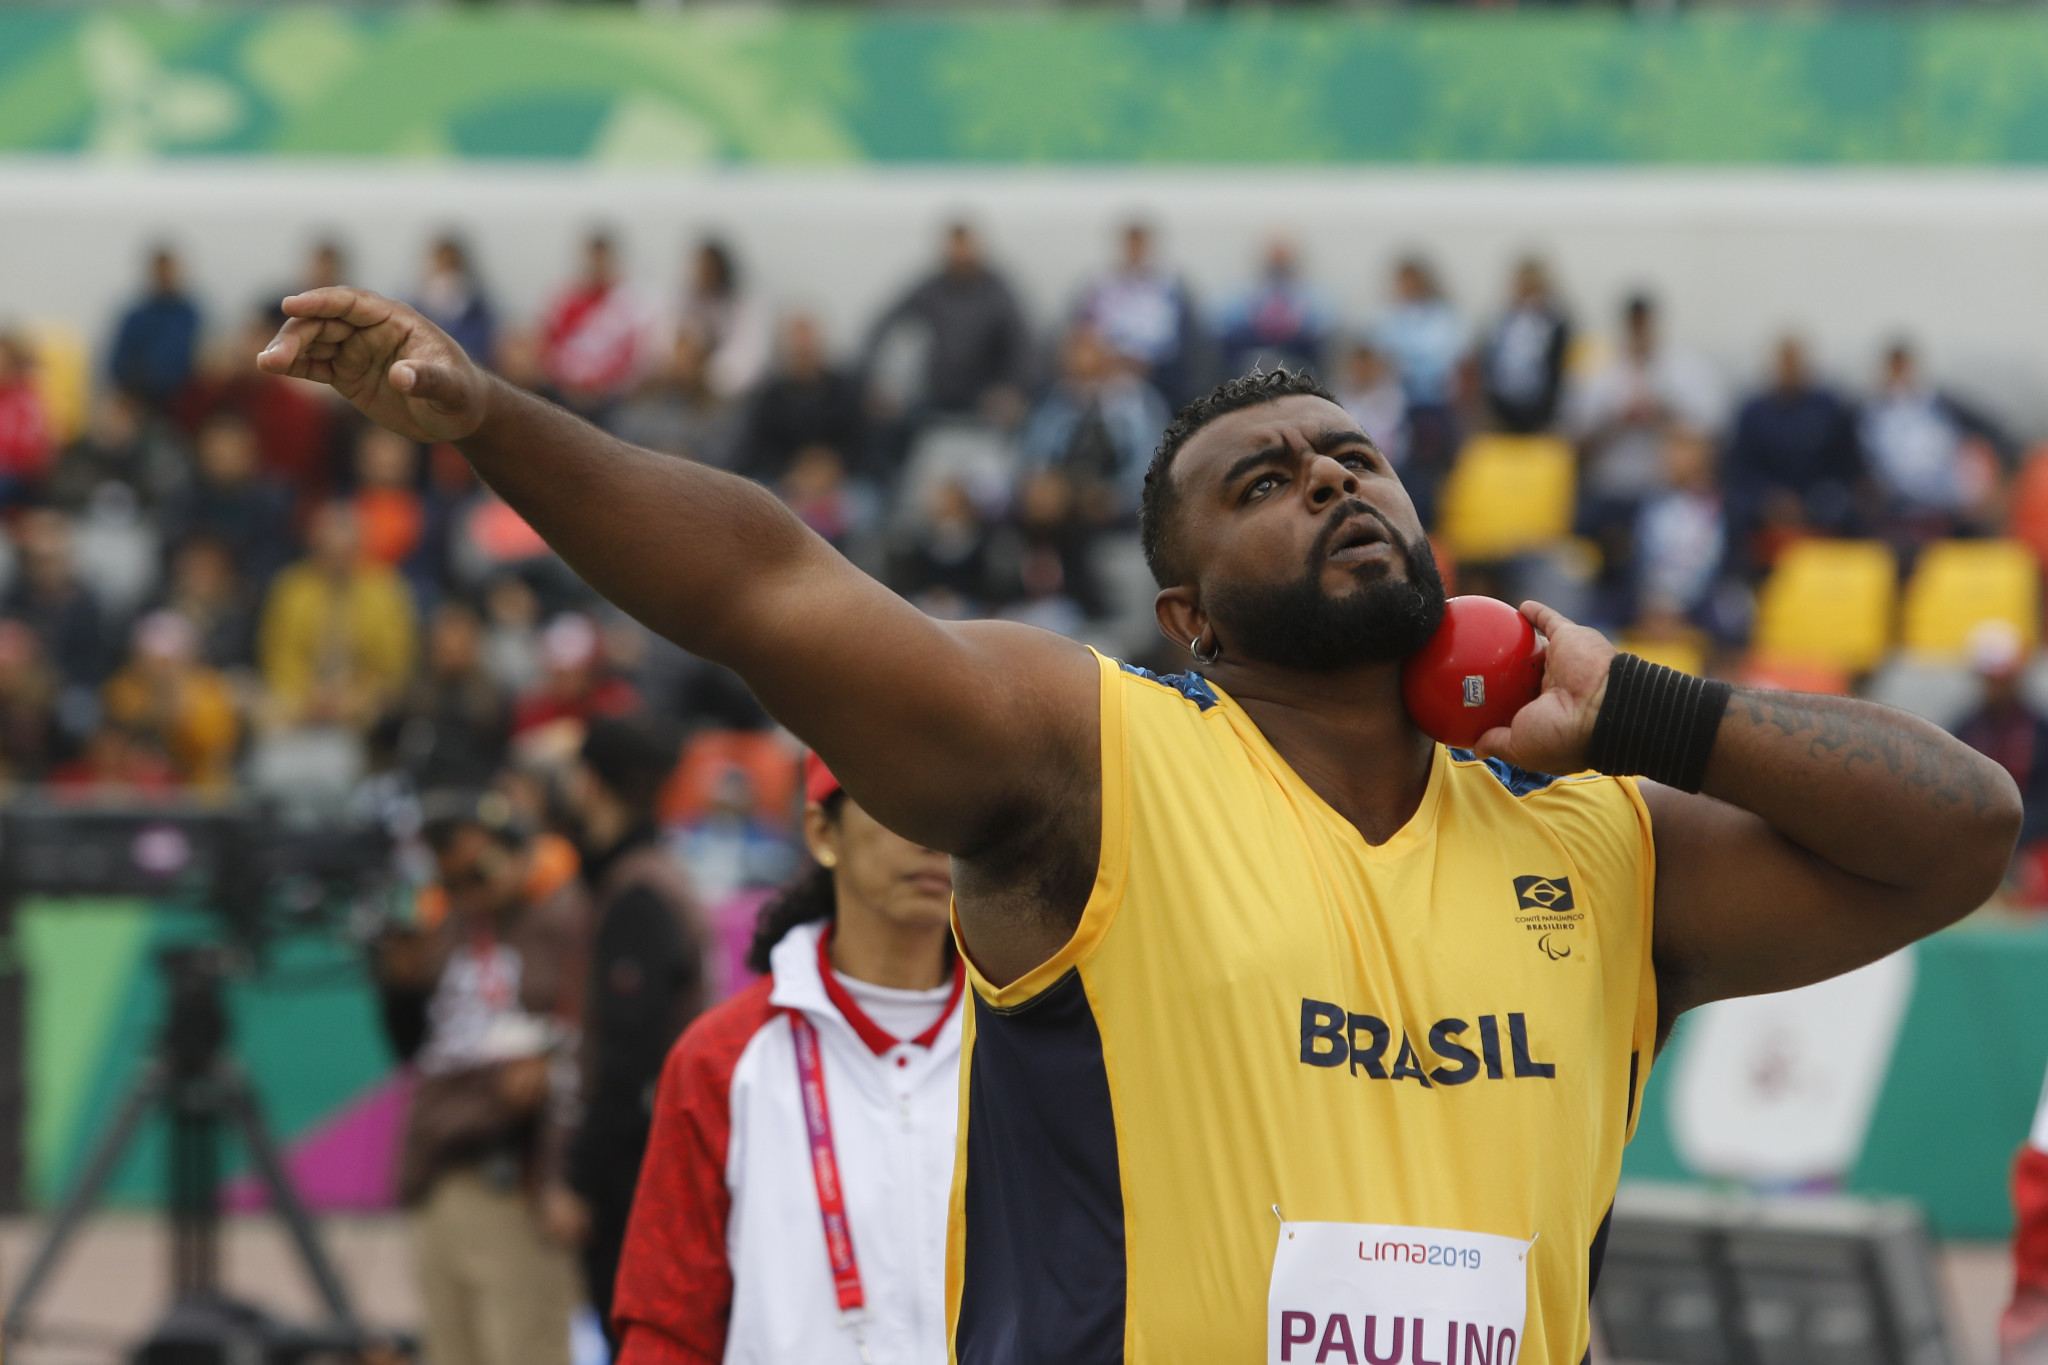 Brazil dominate in athletics at Lima 2019 Parapan American Games